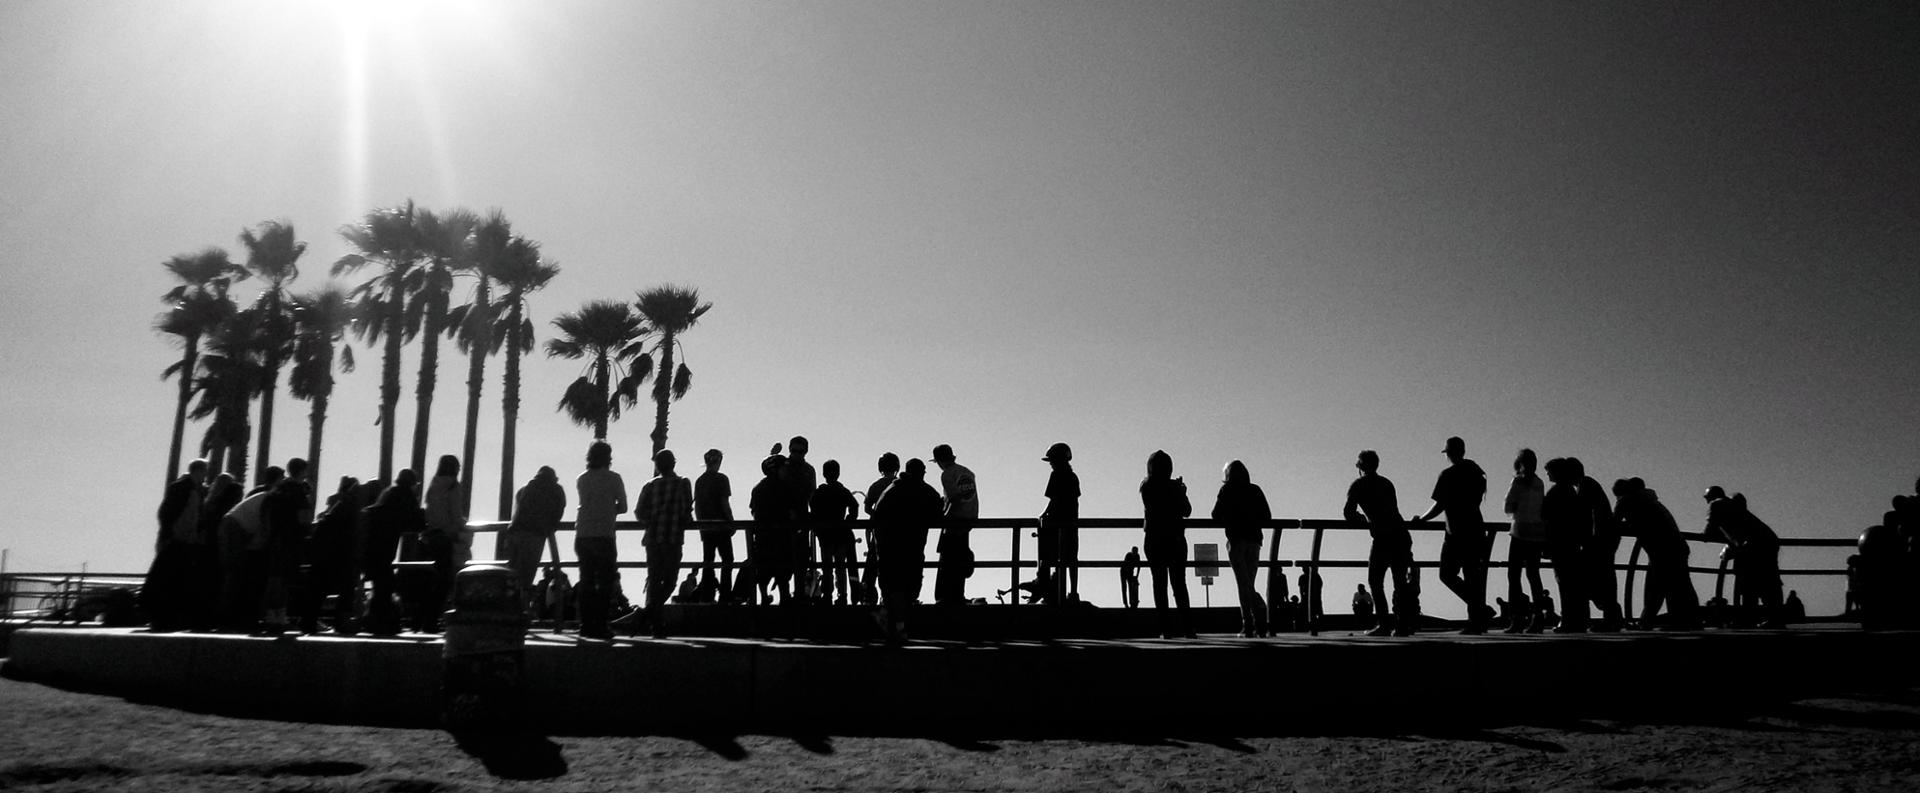 Spectators, Los Angeles, 2014.JPG